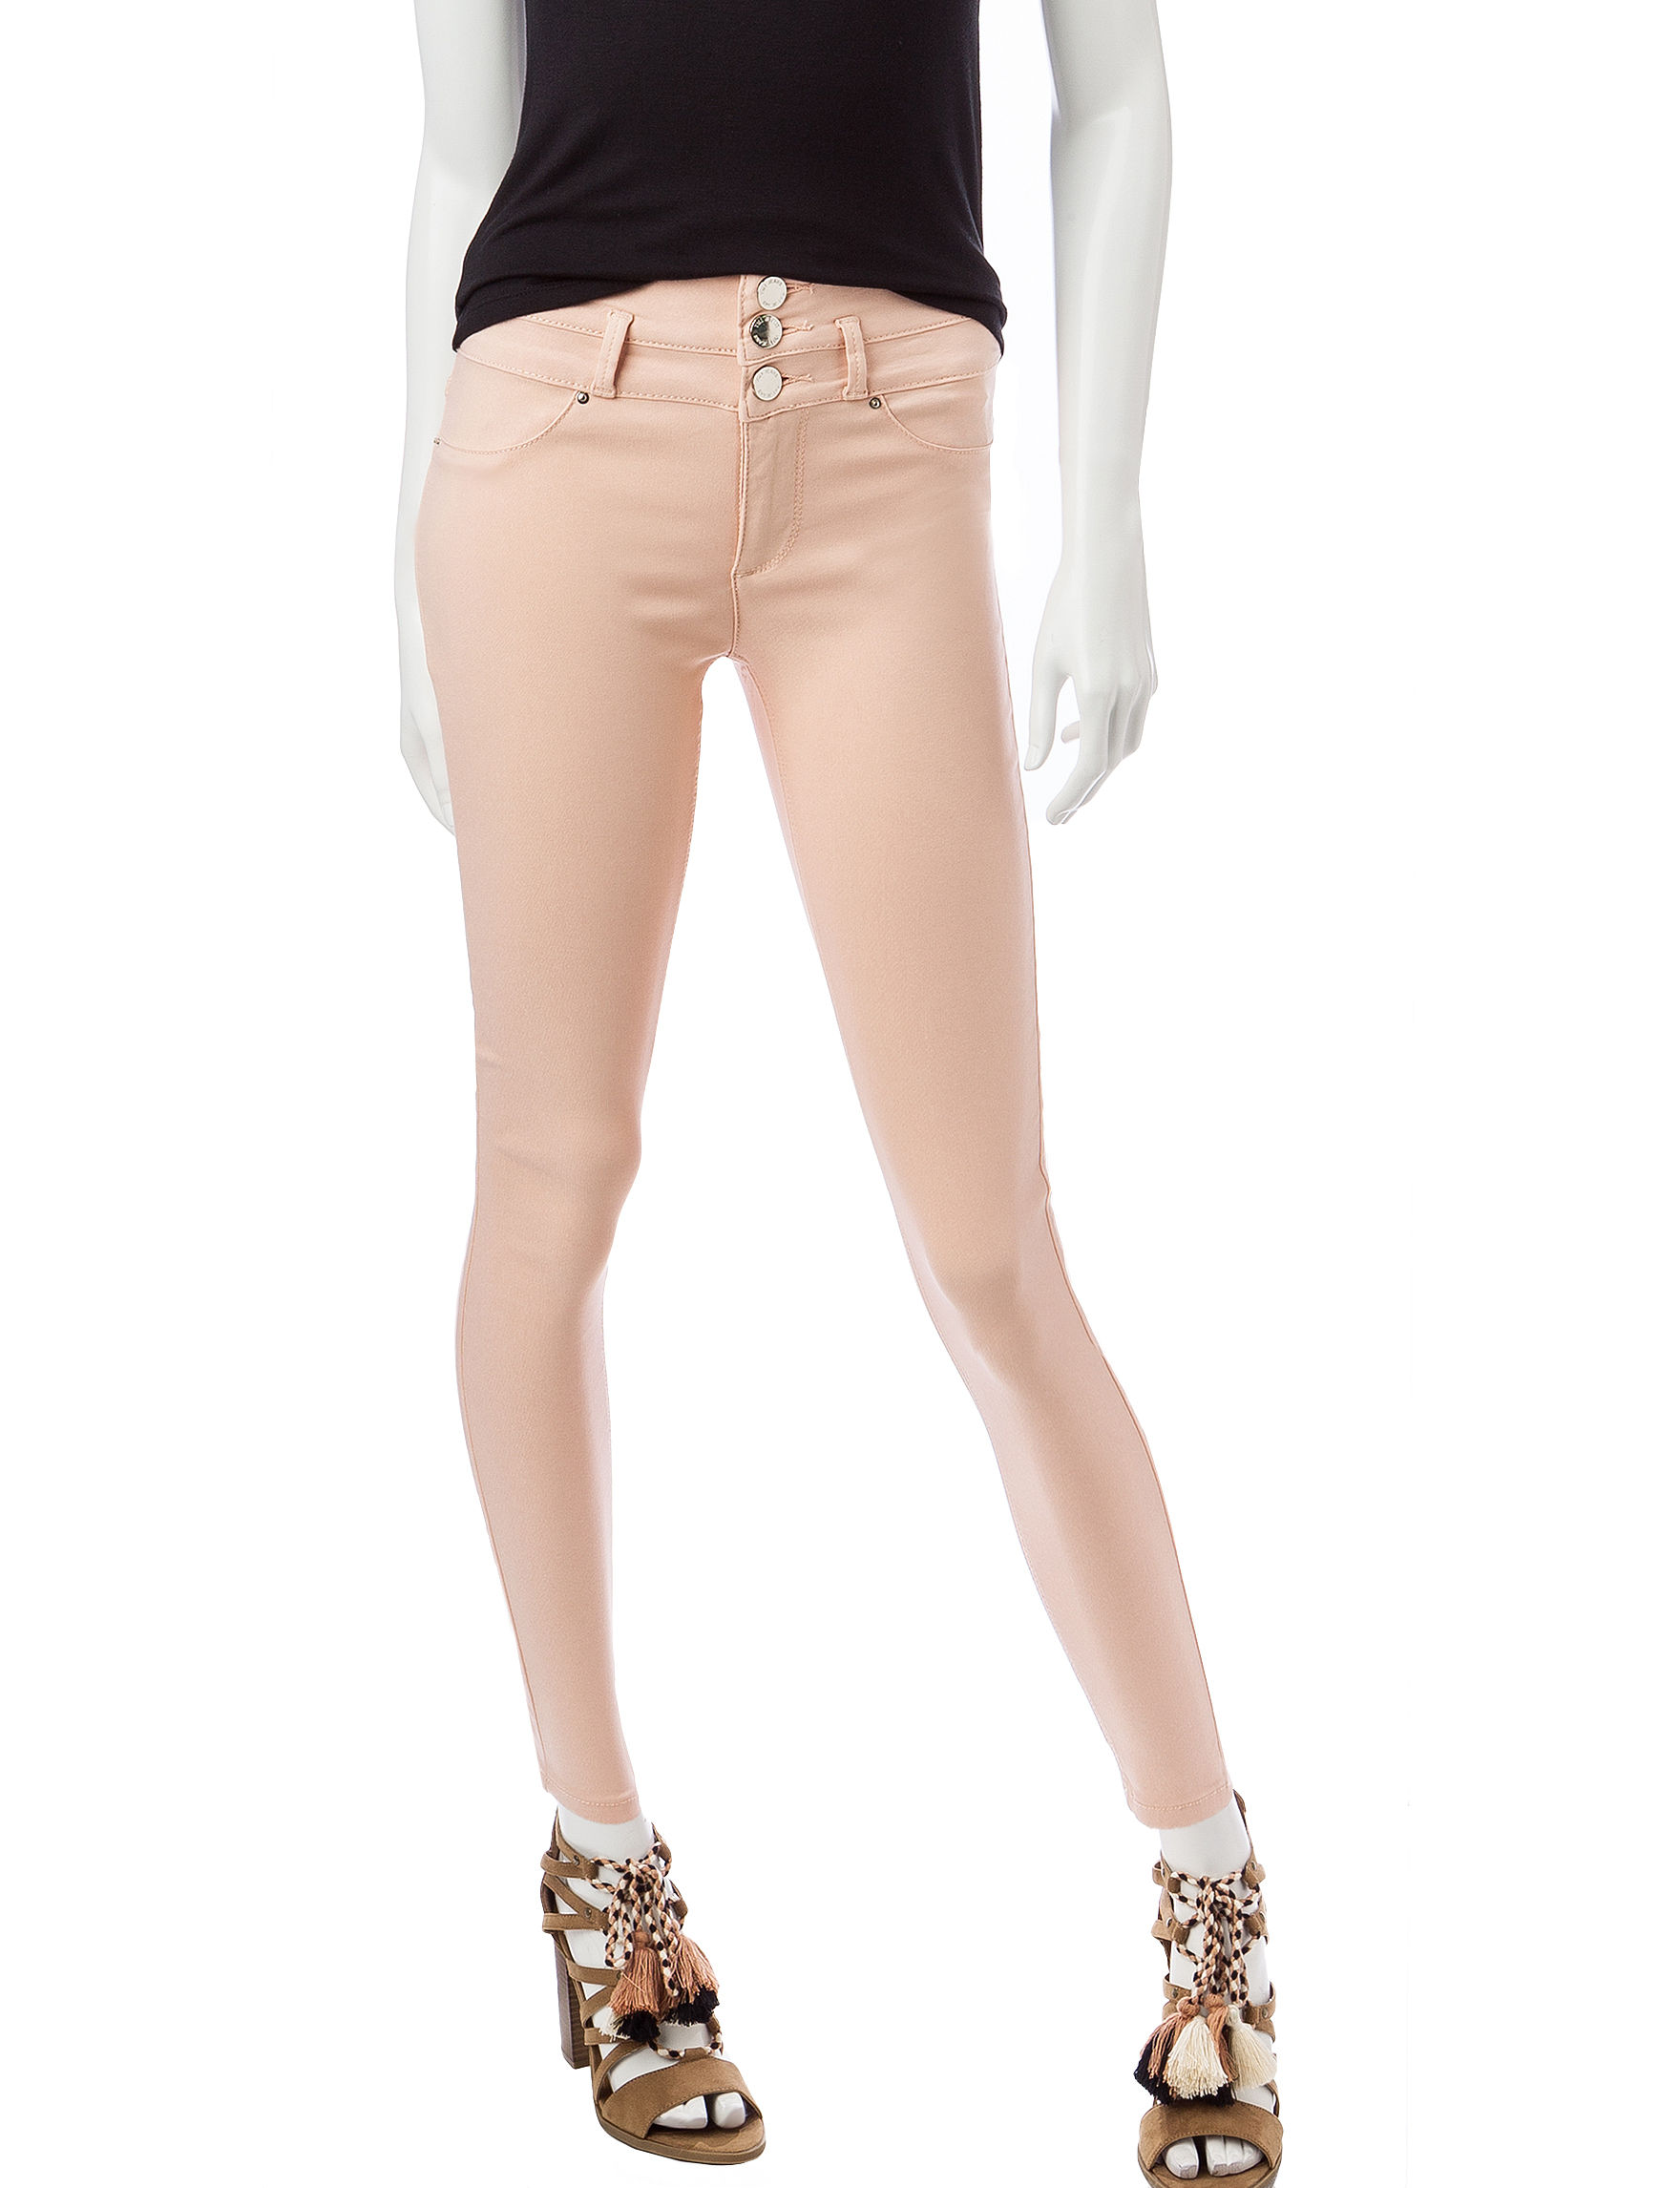 Wishful Park Pink Skinny Stretch